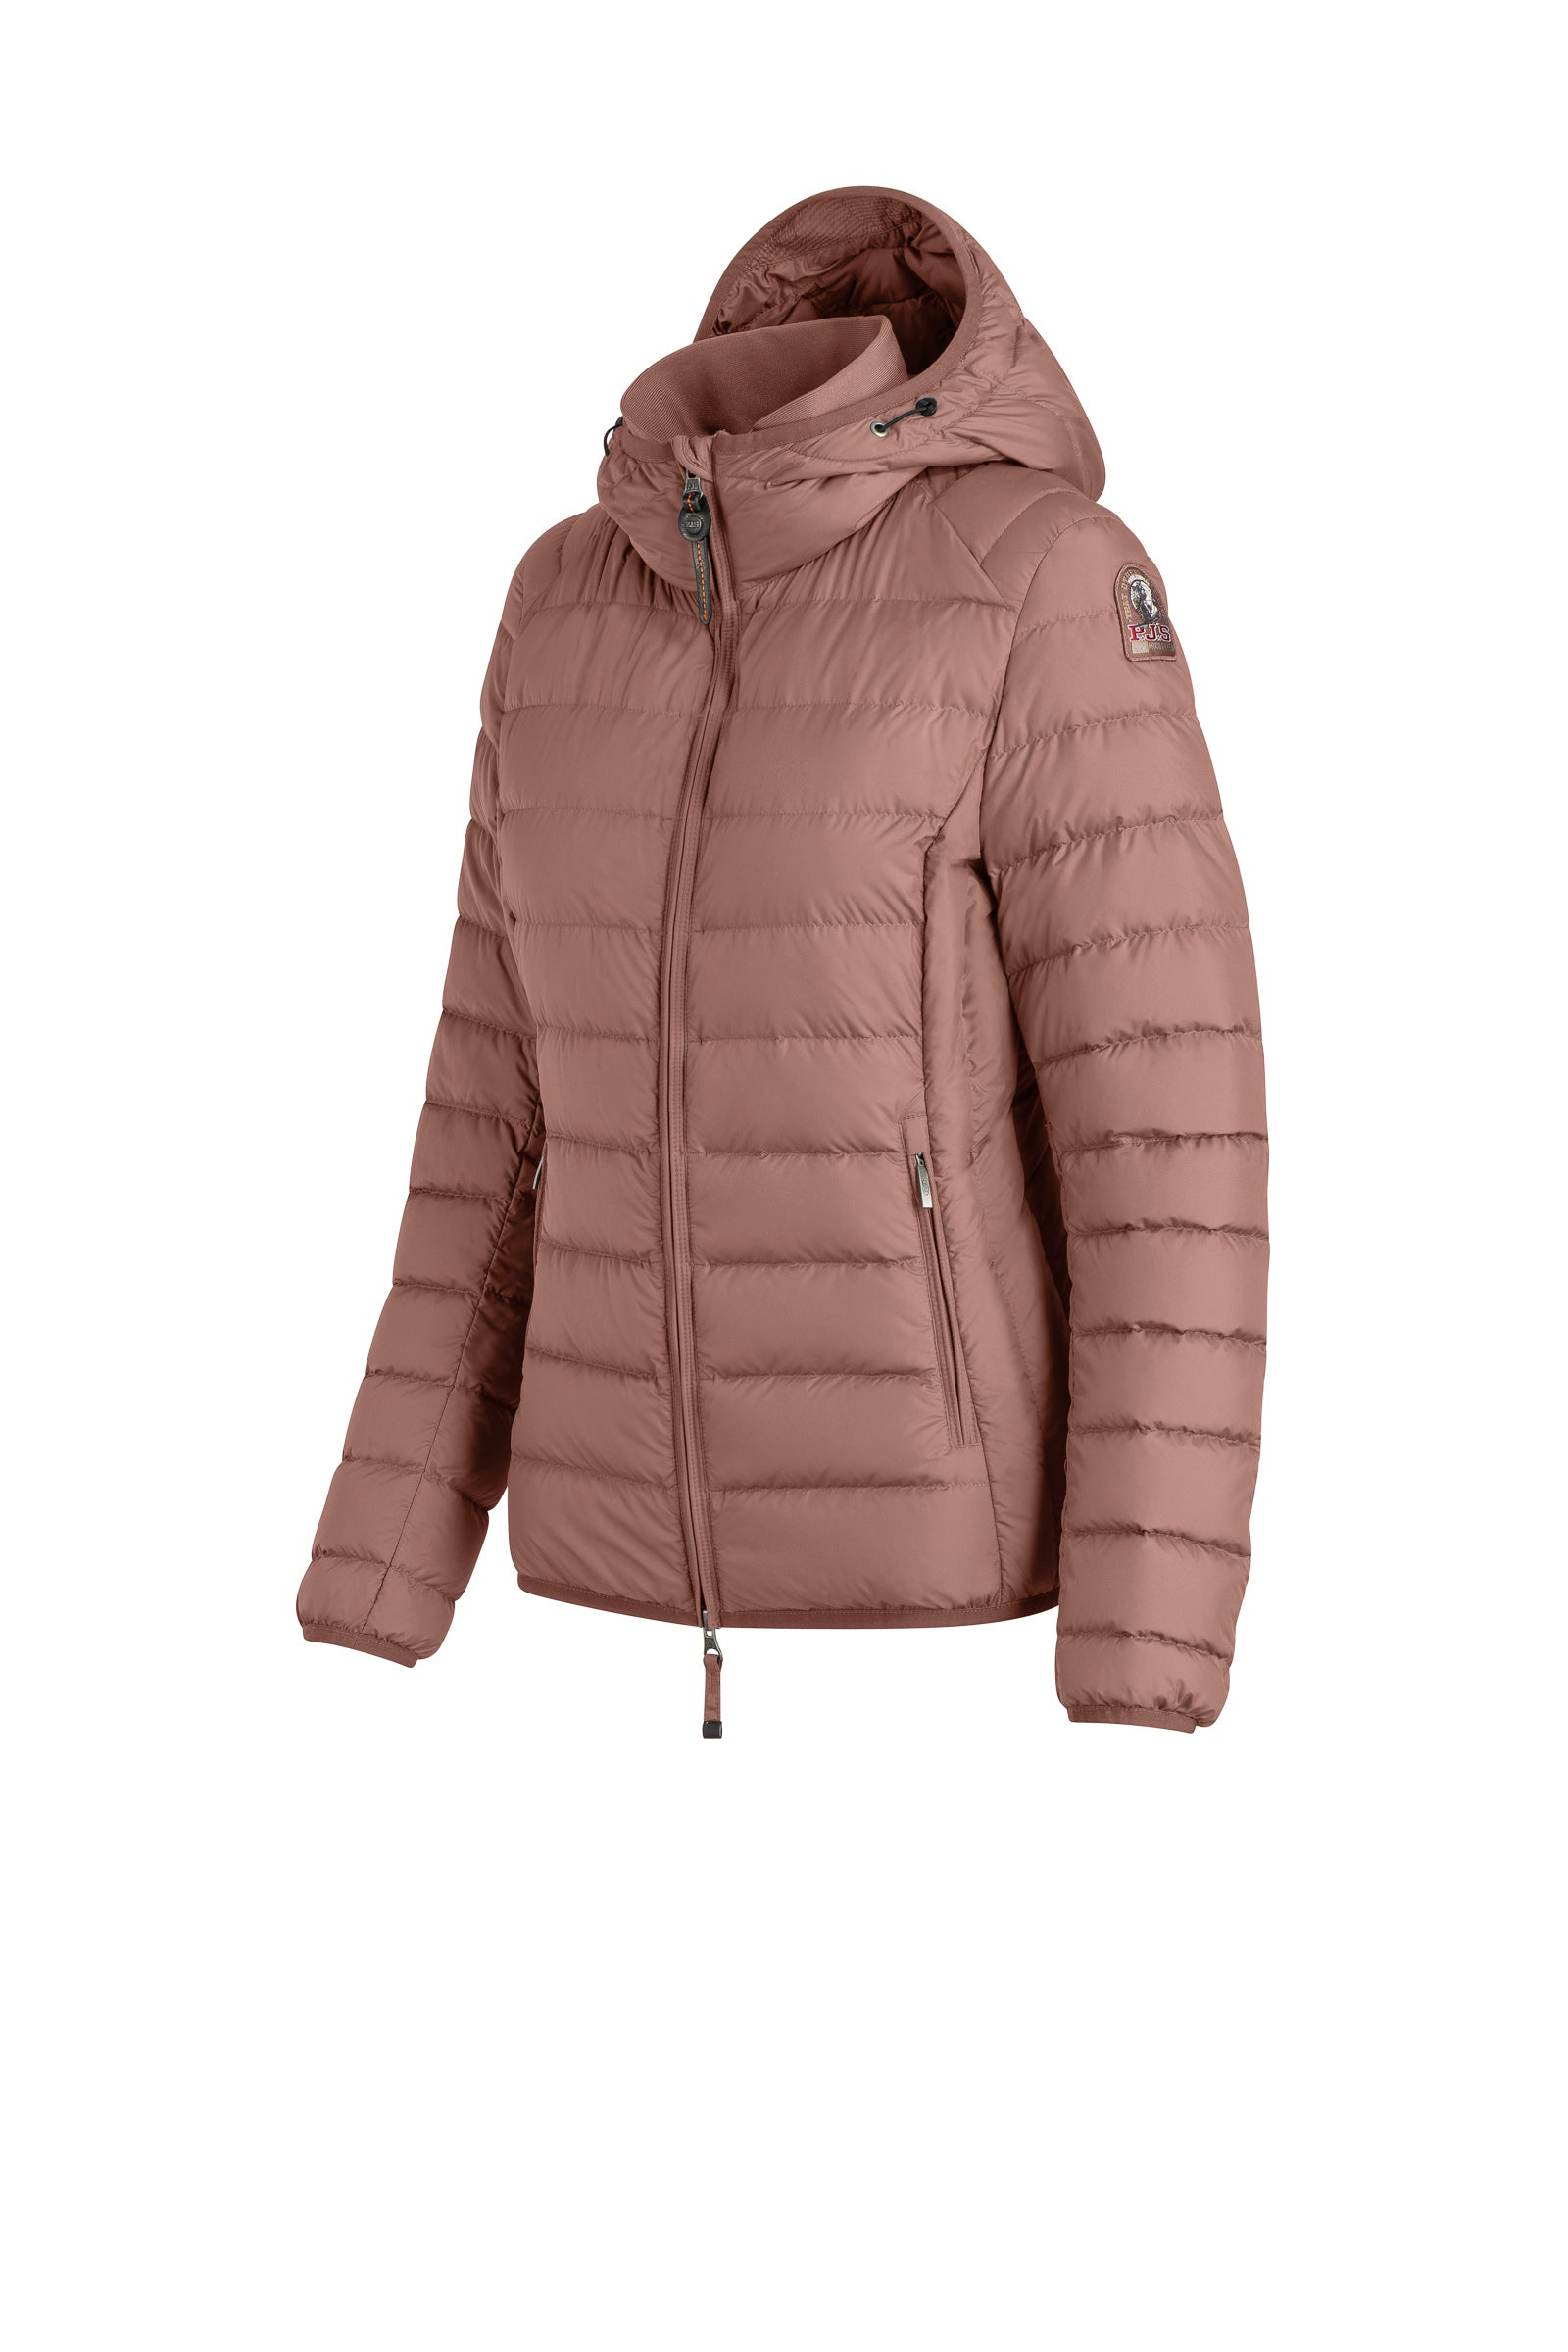 8de445ec sweden parajumpers womens juliet jacket cappuccino 6d38d 0c1d9; uk parajumpers  juliet jacket in ash rose 0ba43 89289